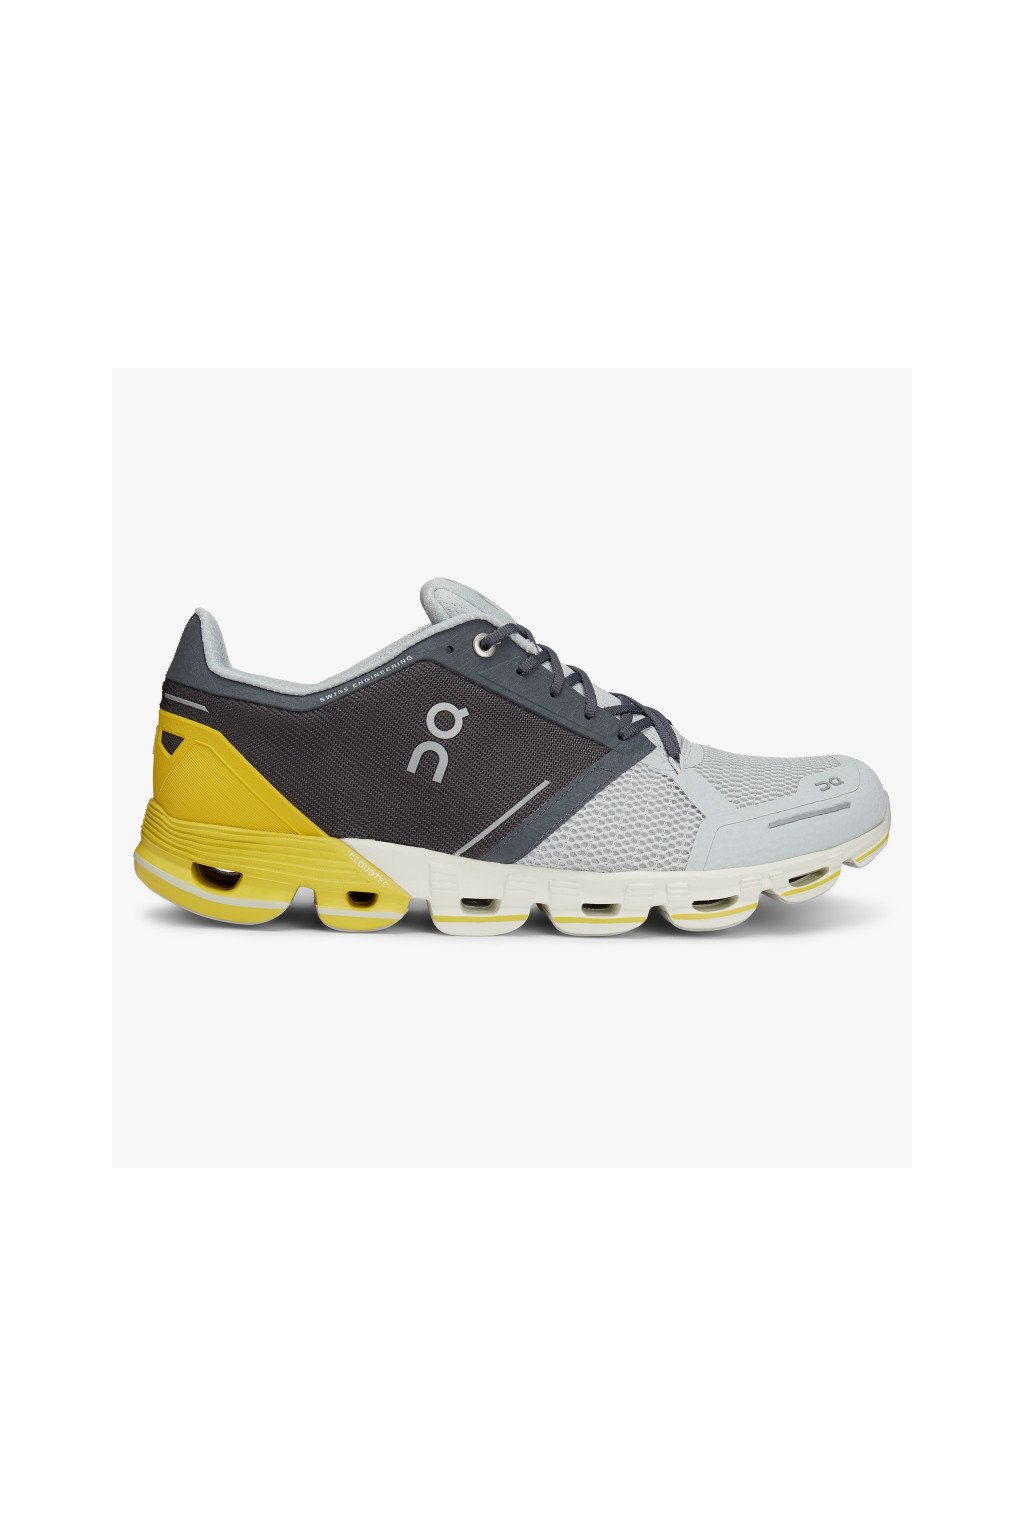 ON CLOUDFLYER GREY LIME M